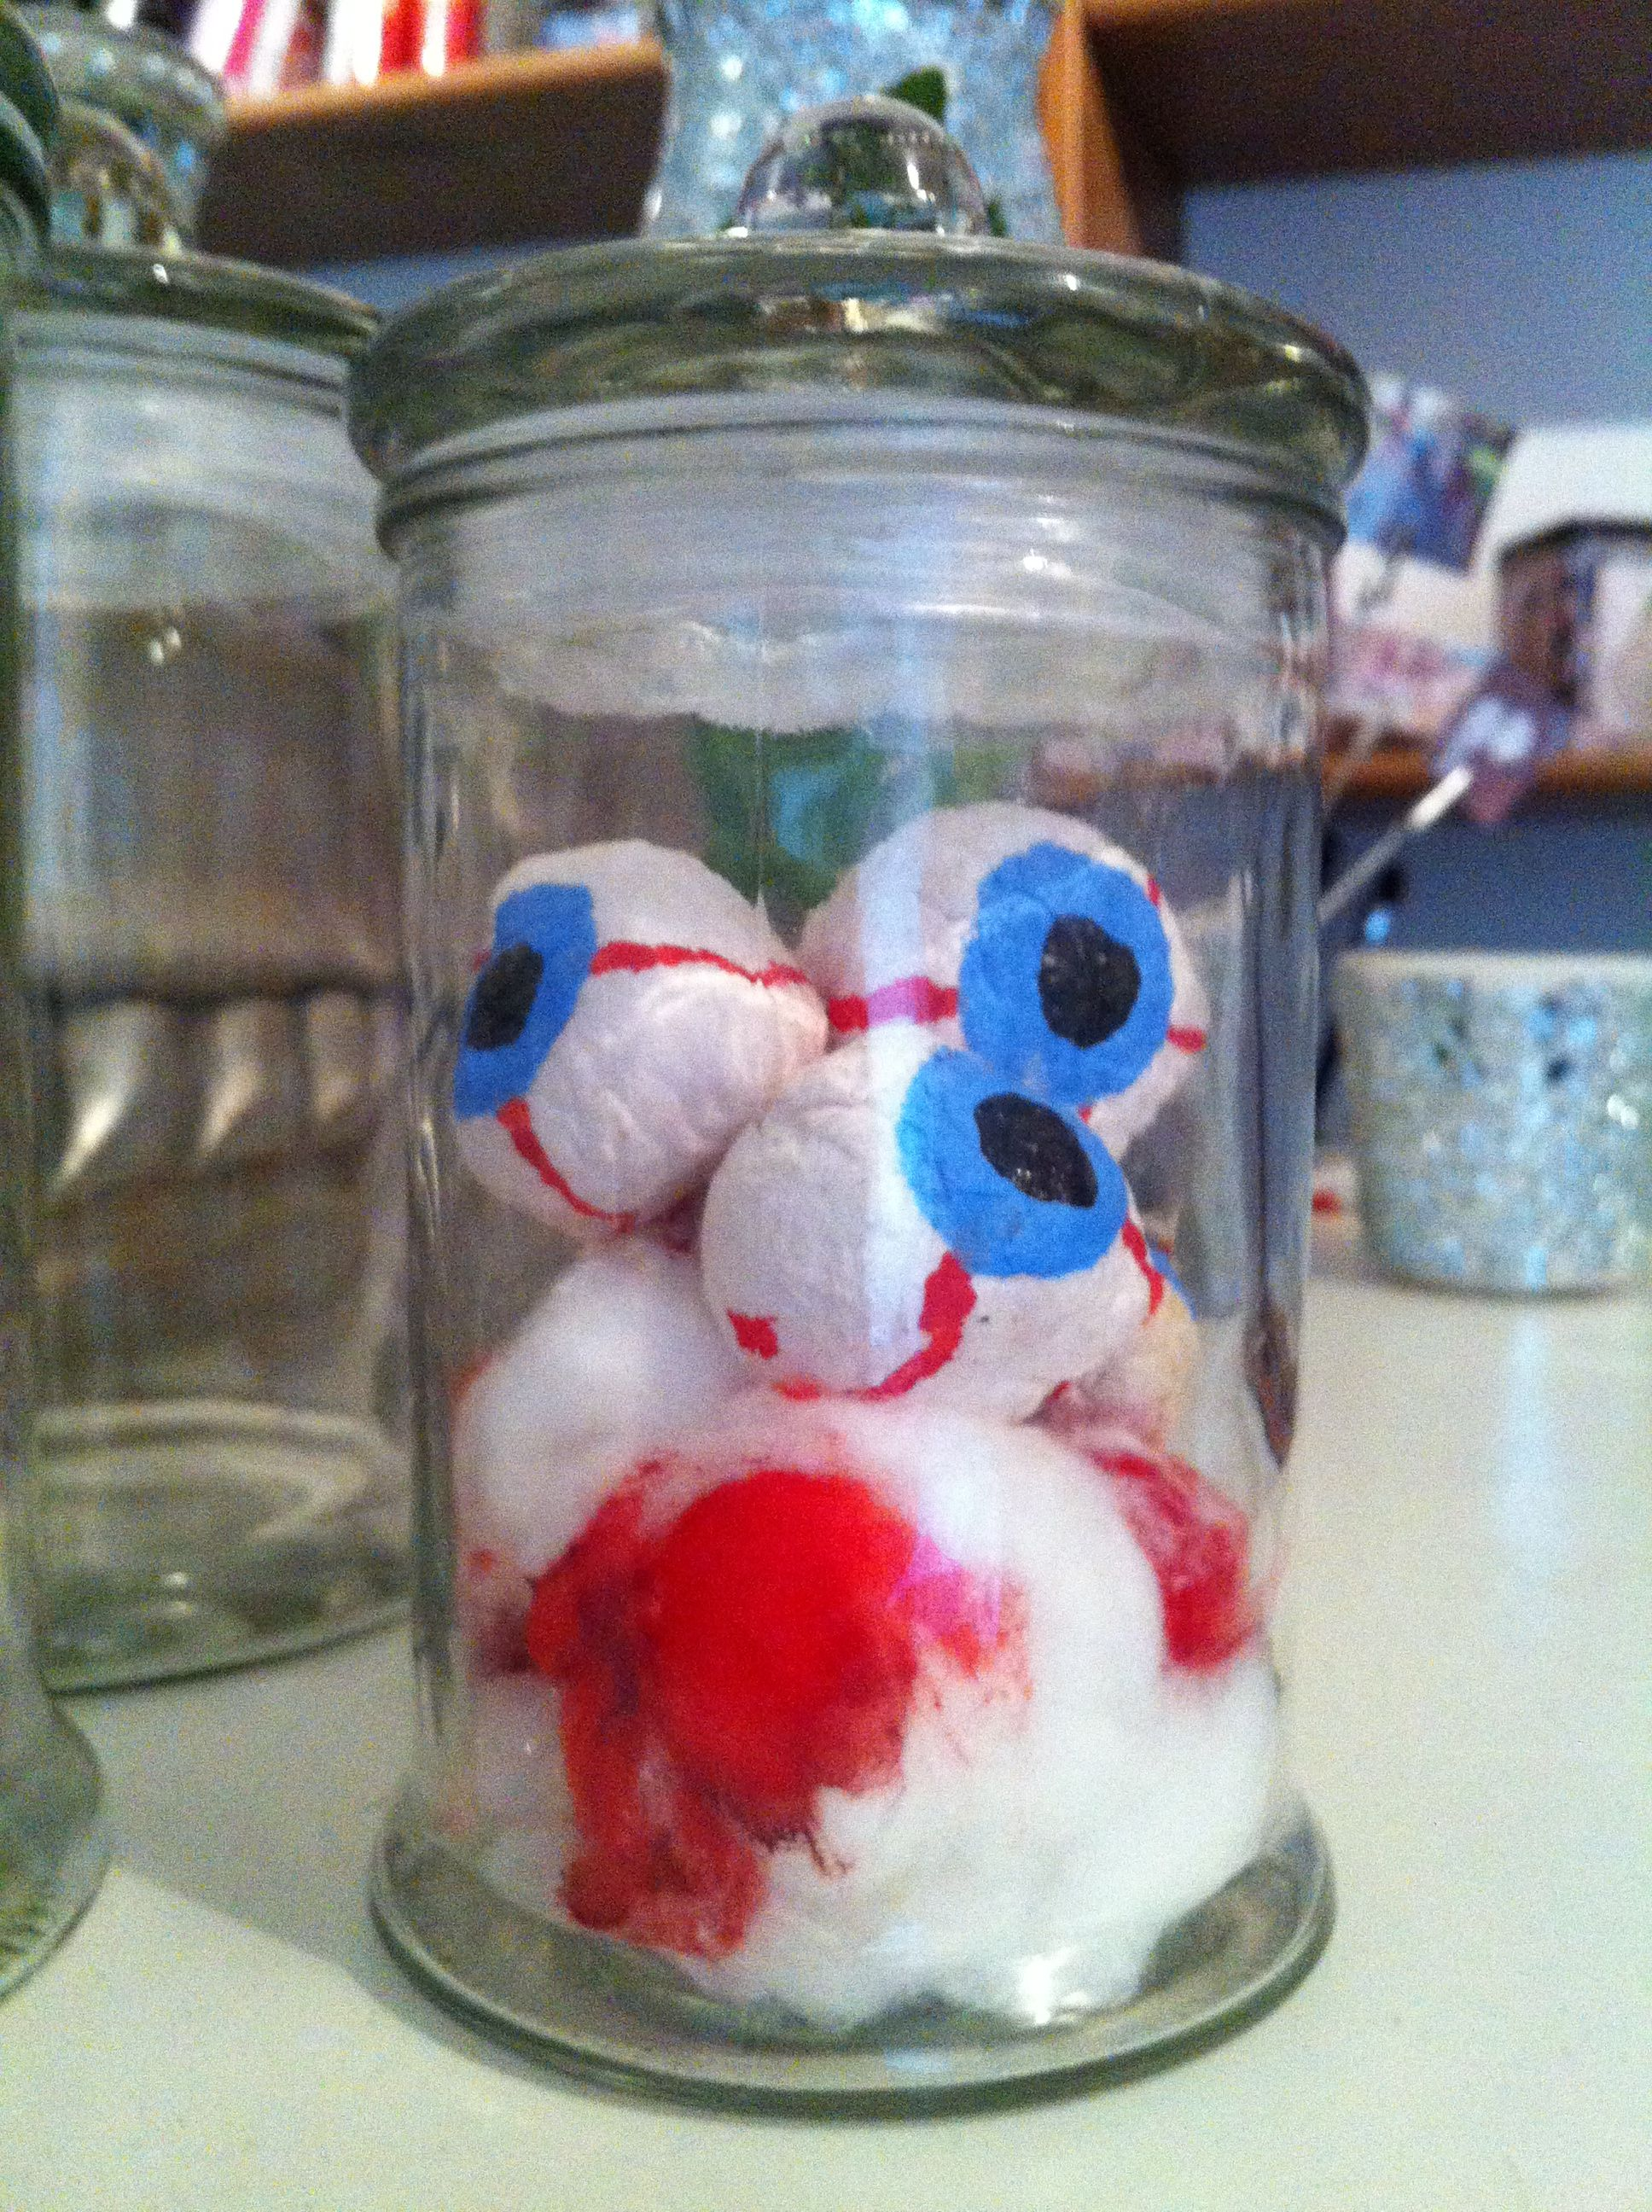 put food coloring in as blood Spooky spooky Pinterest - diy halloween decorations scary